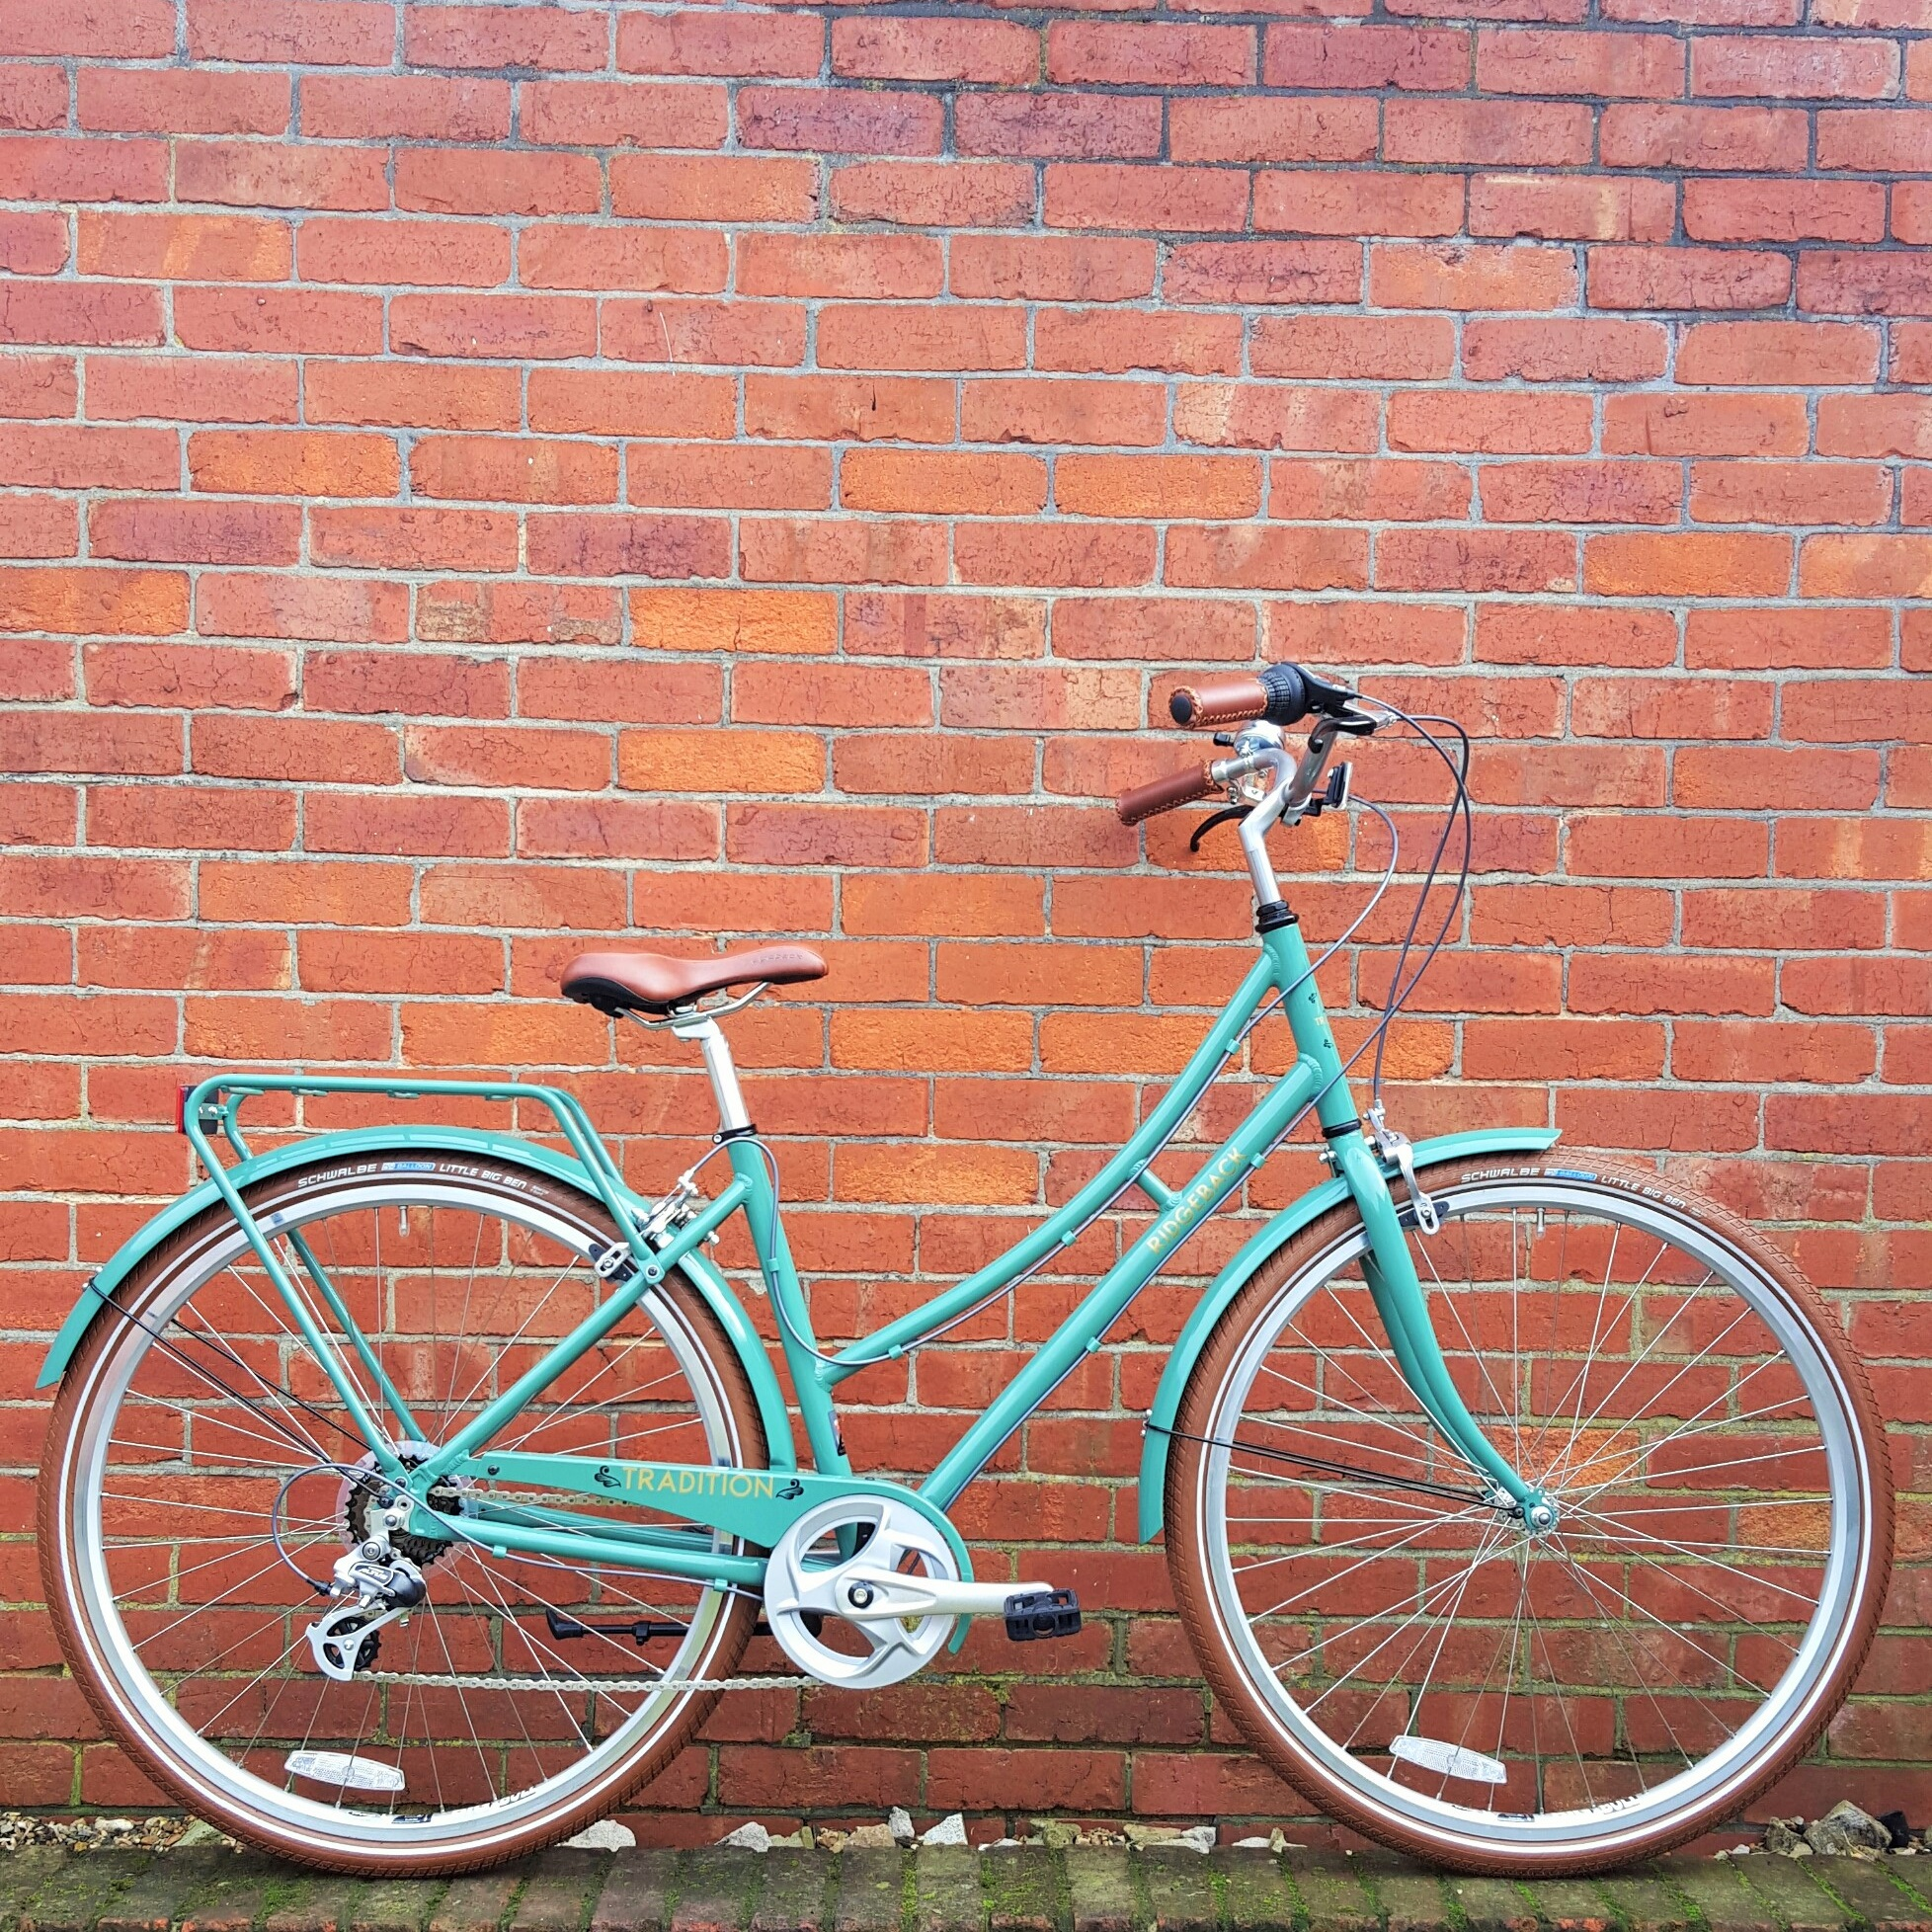 2016 Ridgeback Tradition Sage green; vintage bike; vintage bikes; aluminium frame; basket; ridgeback; bikes; sit up and beg bikes; leath grips; leather saddle; vintage; cycling; bicycle; ridgeback tradition; ridgeback tradition vintage bike; vintage biycle